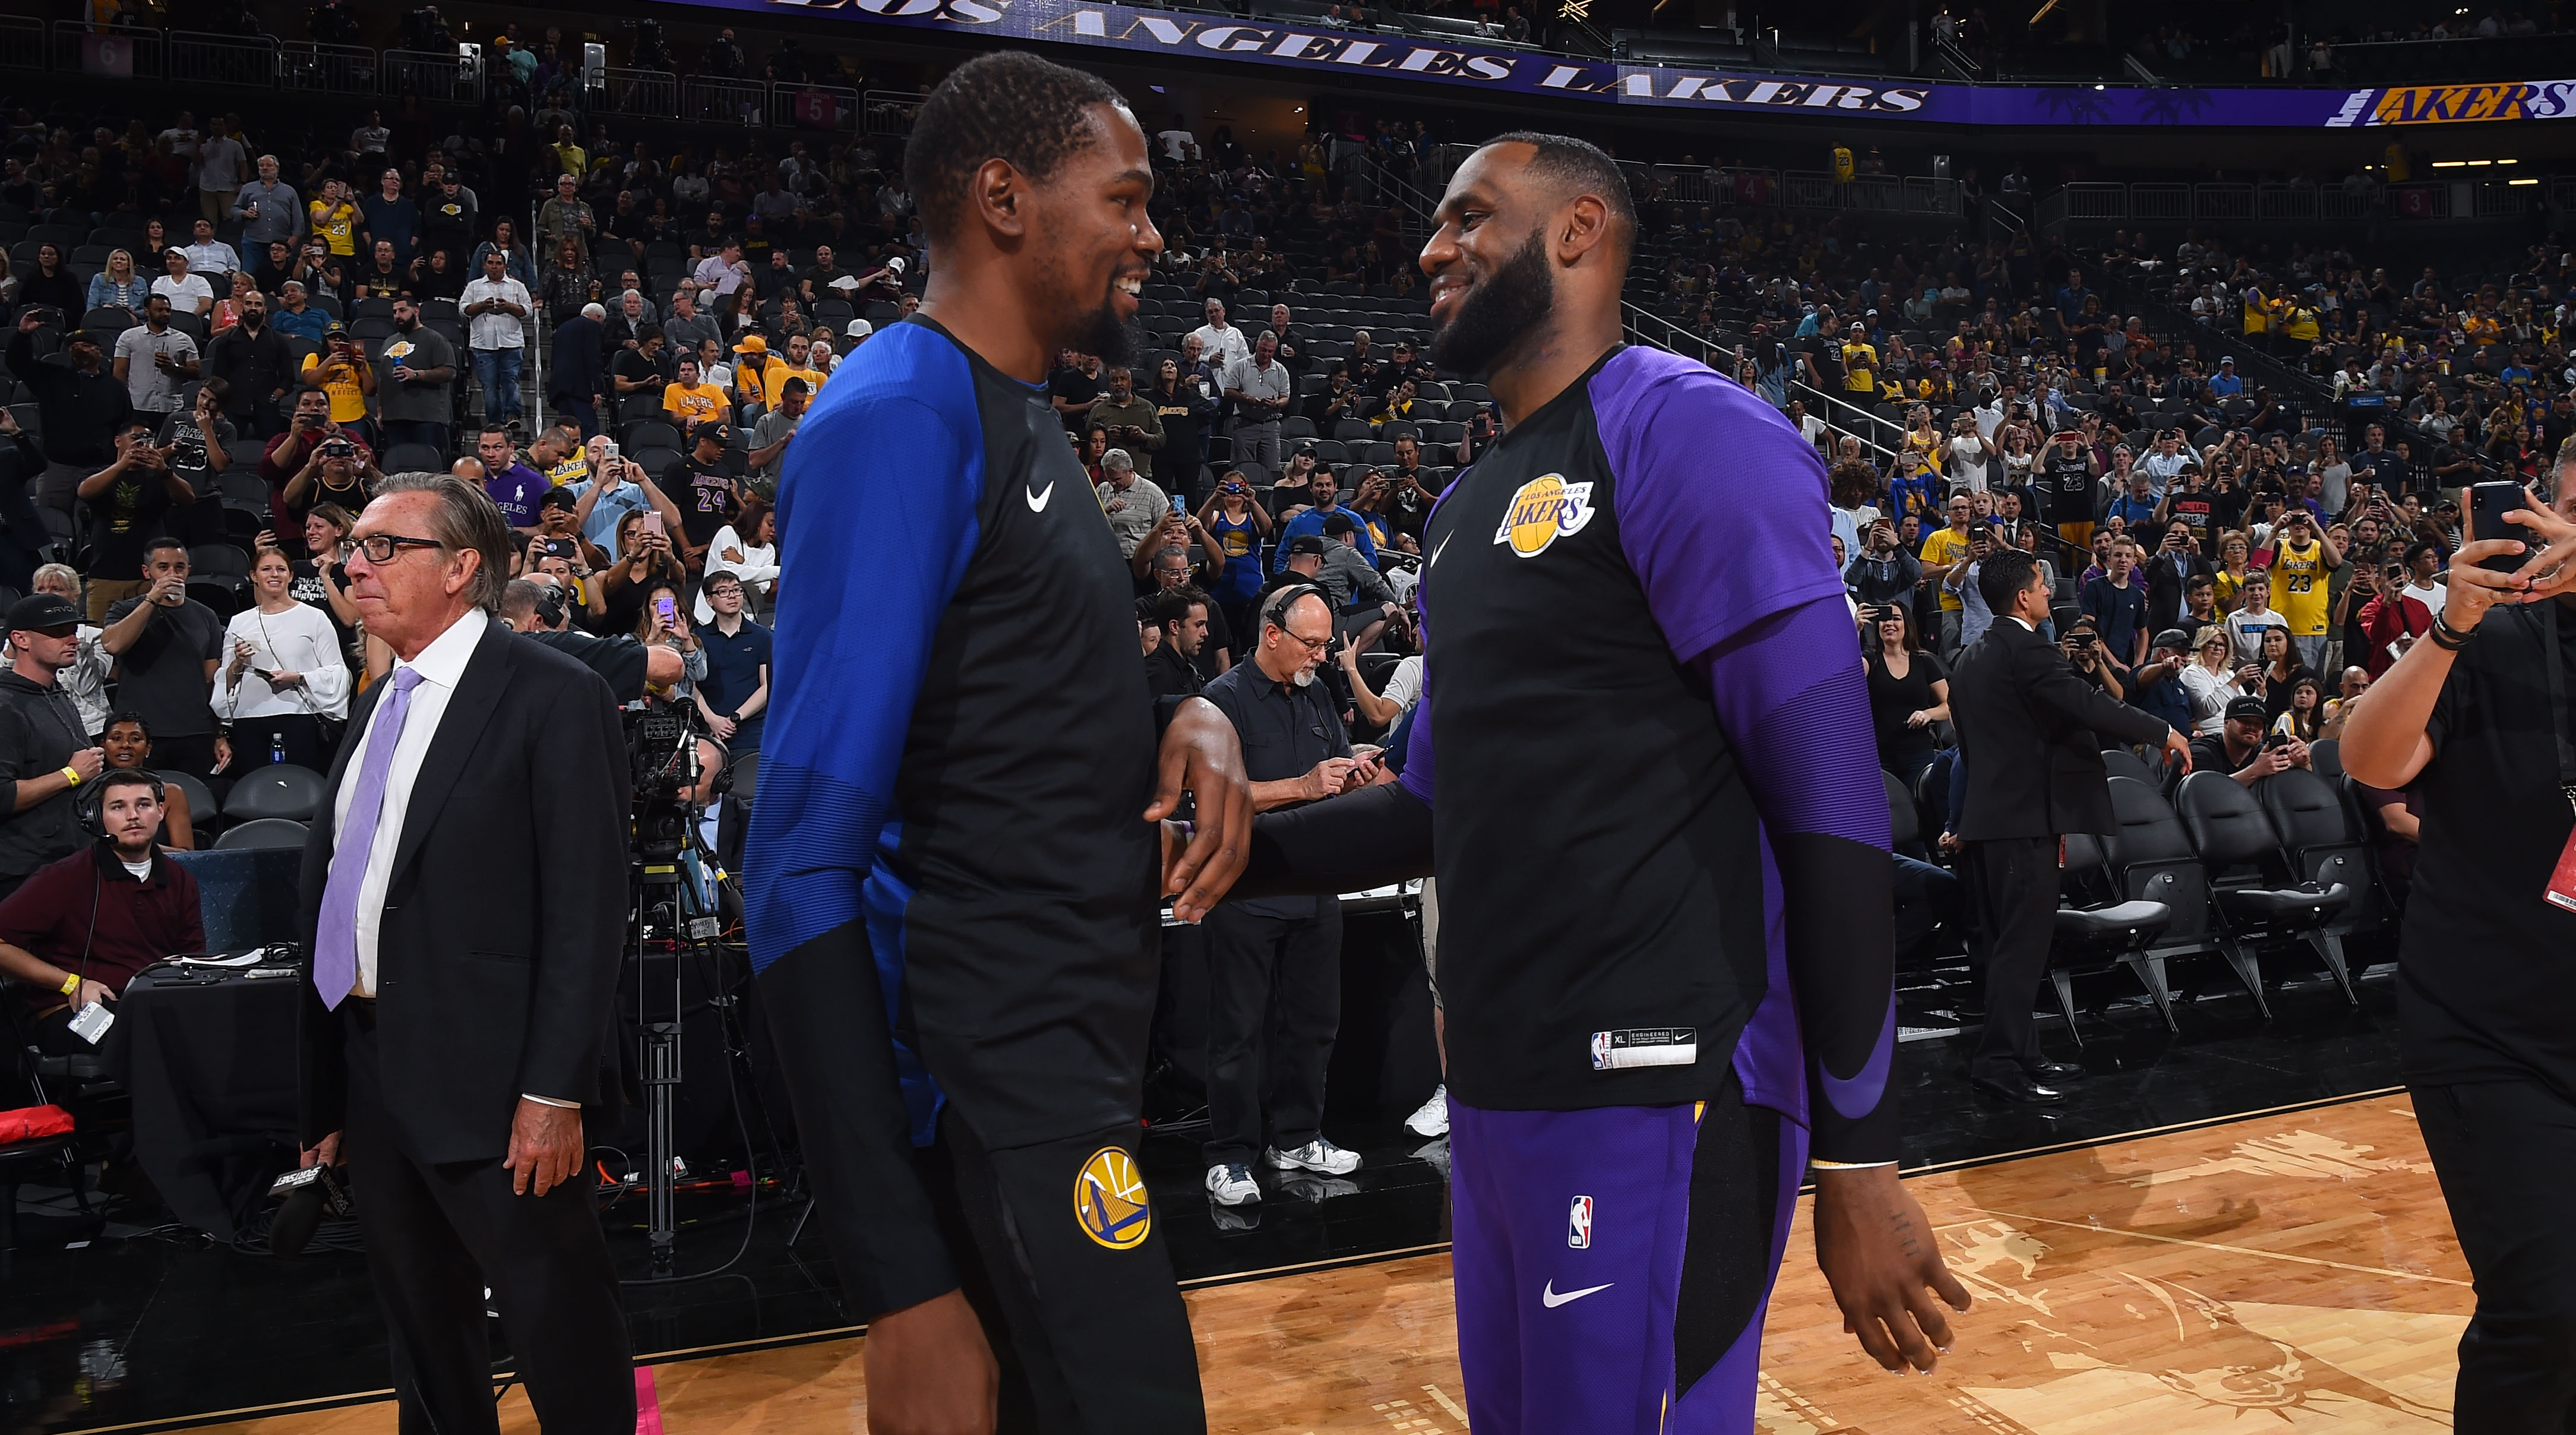 Kevin Durant Free Agency Rumors  Why He Should Join the Lakers  c3d38f0b4